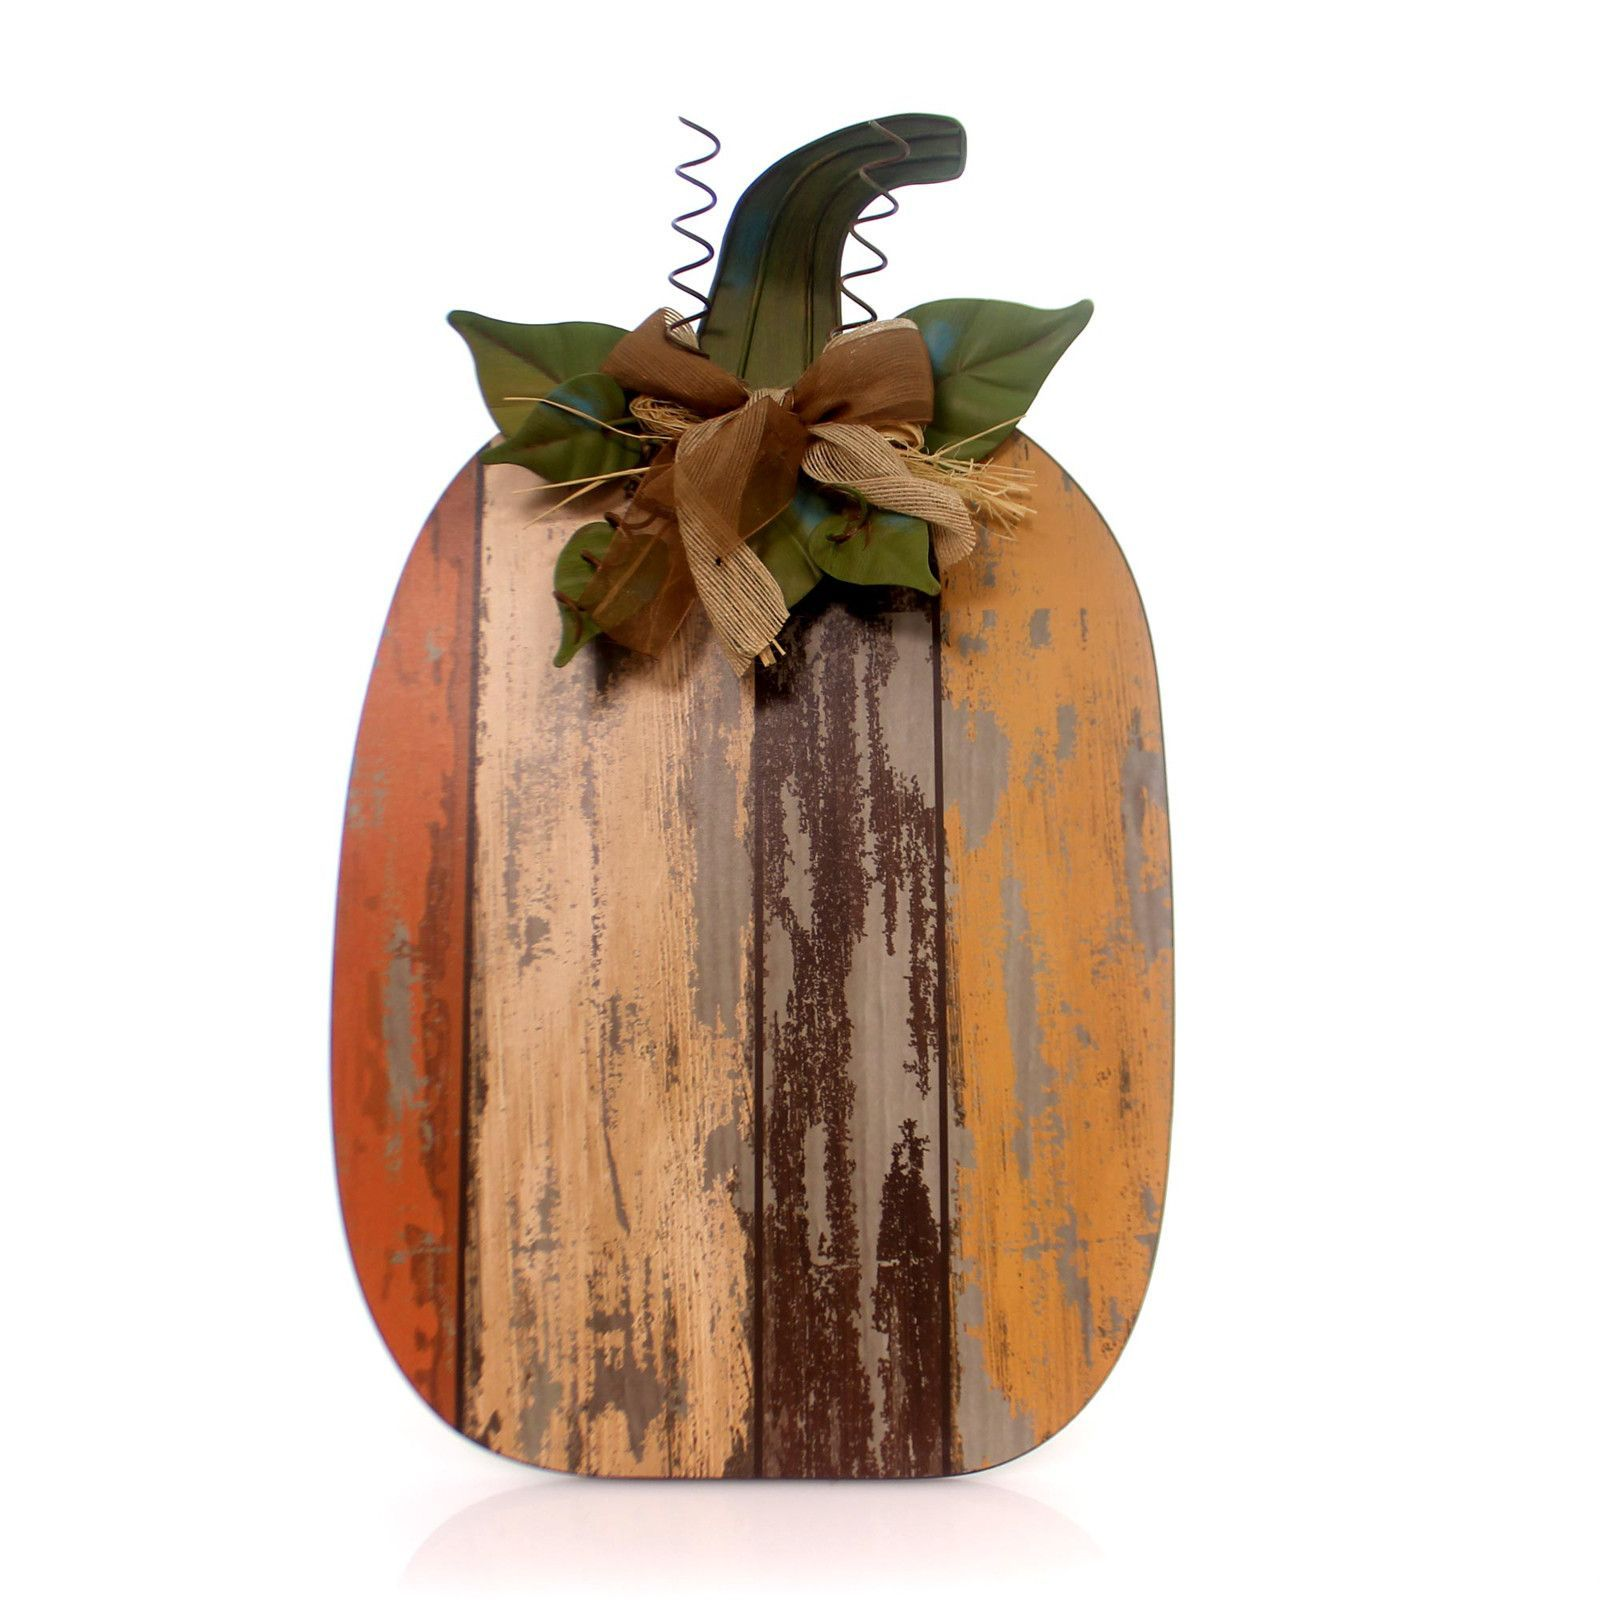 Home Decor Wood Slat Pumpkin Figurine Wood slats Wood types and